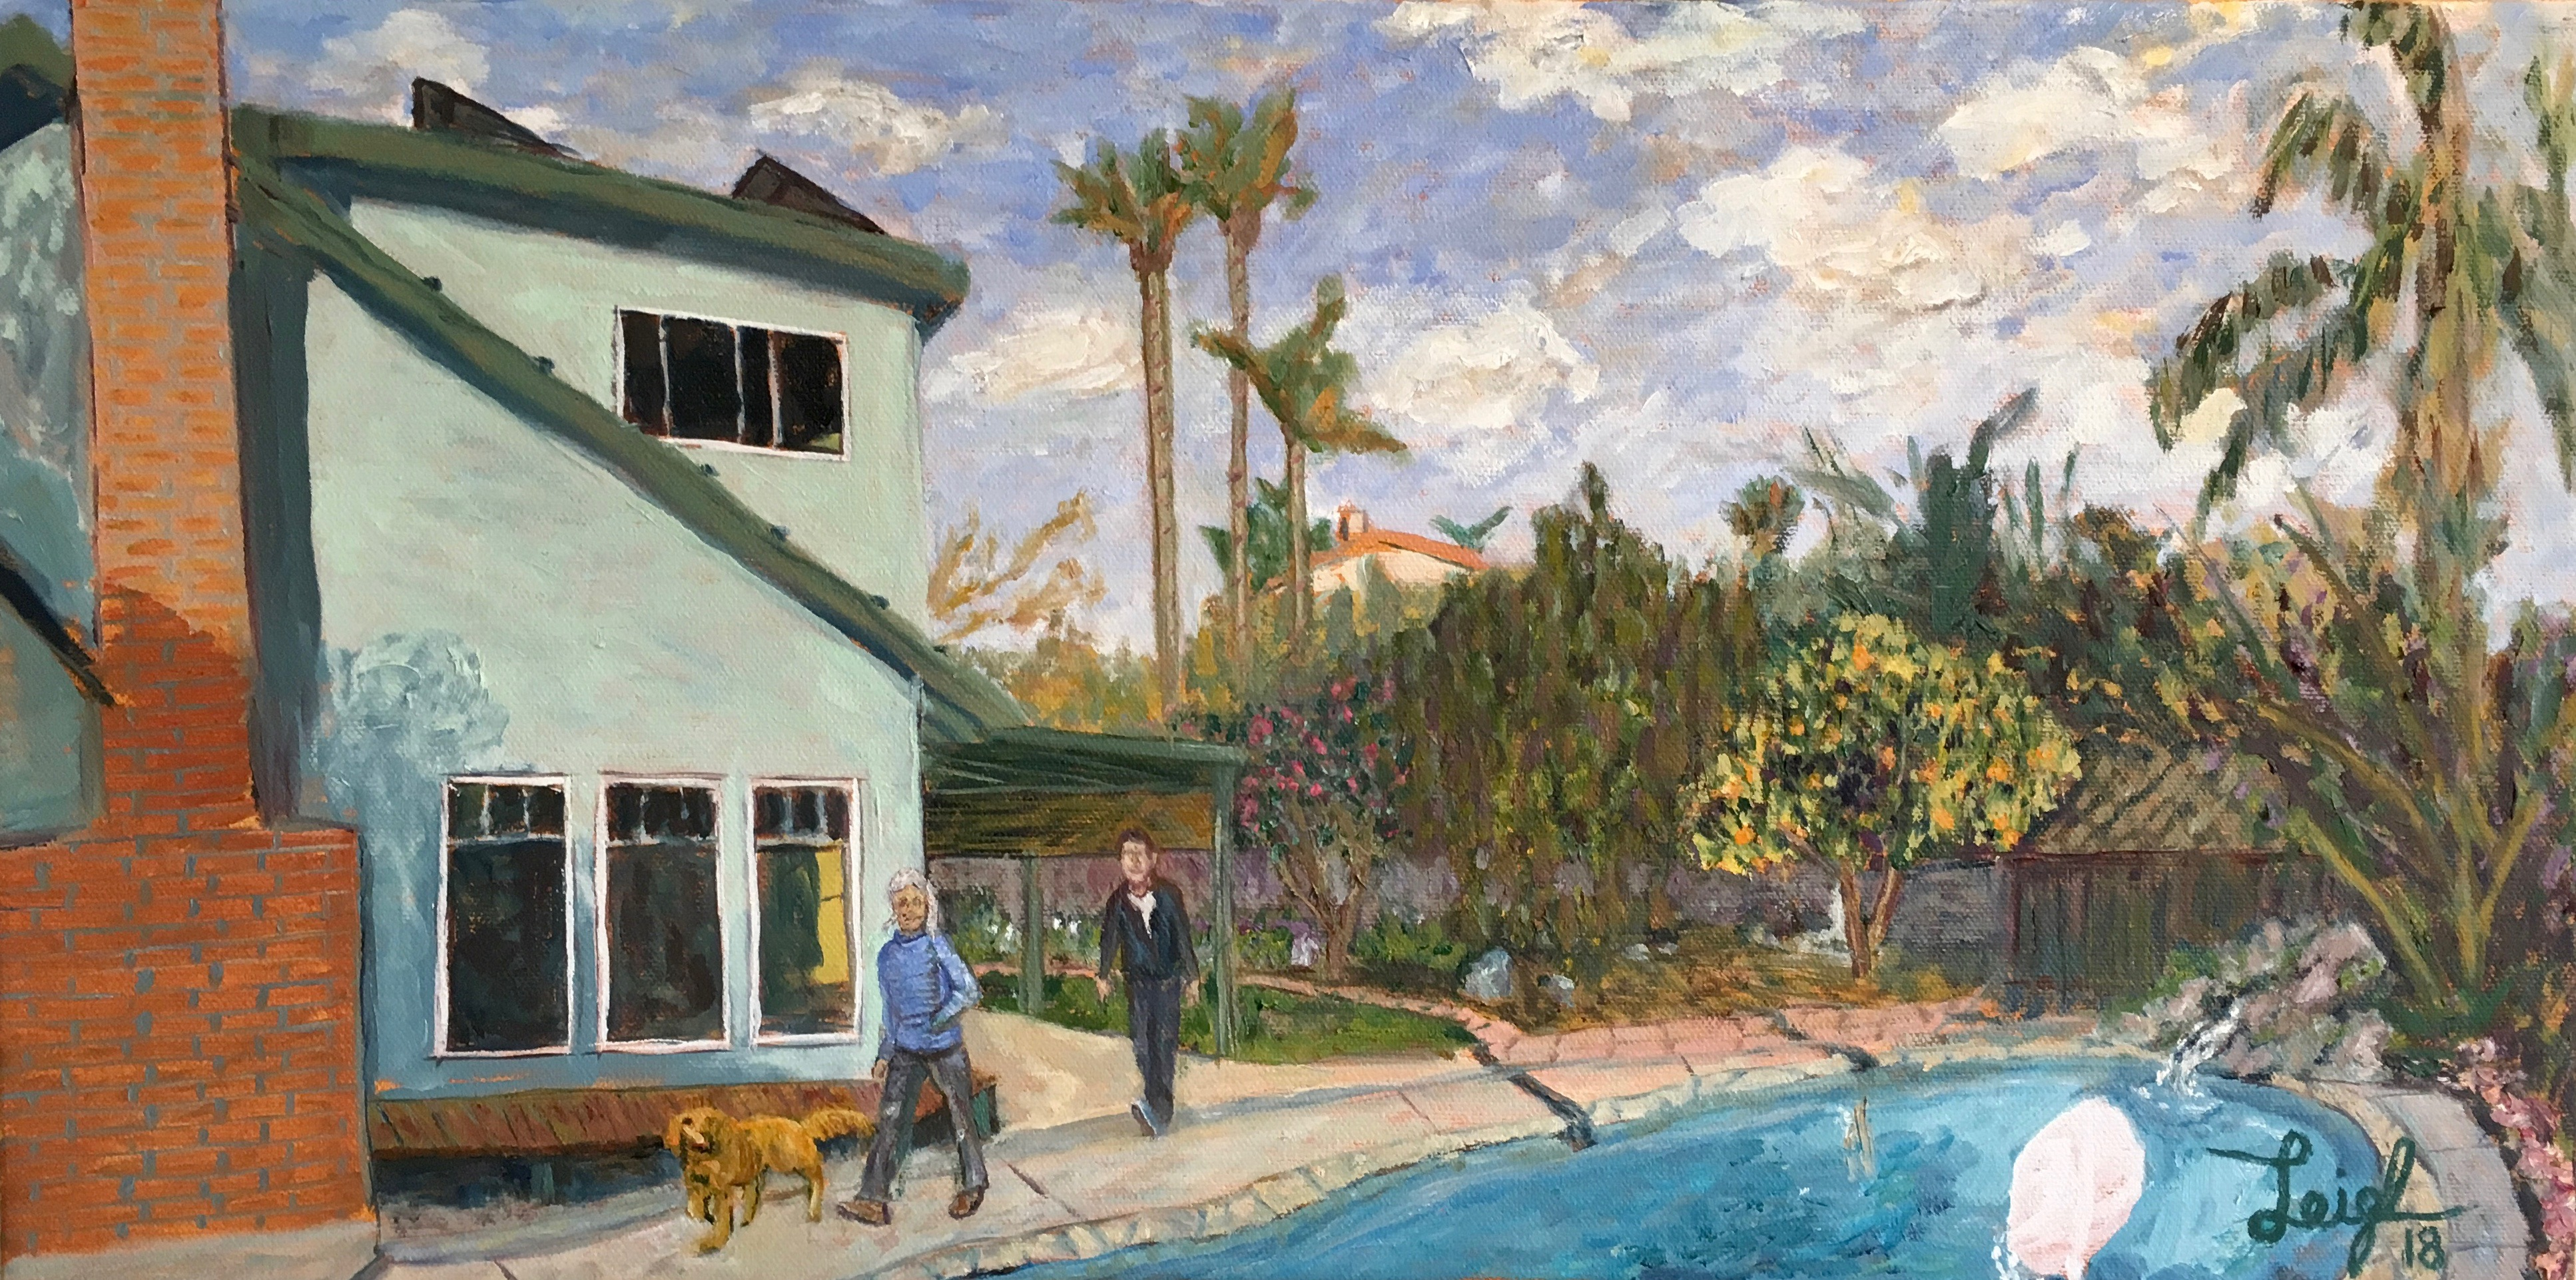 Backyard by the Pool  ~   2018  •  24 x 18